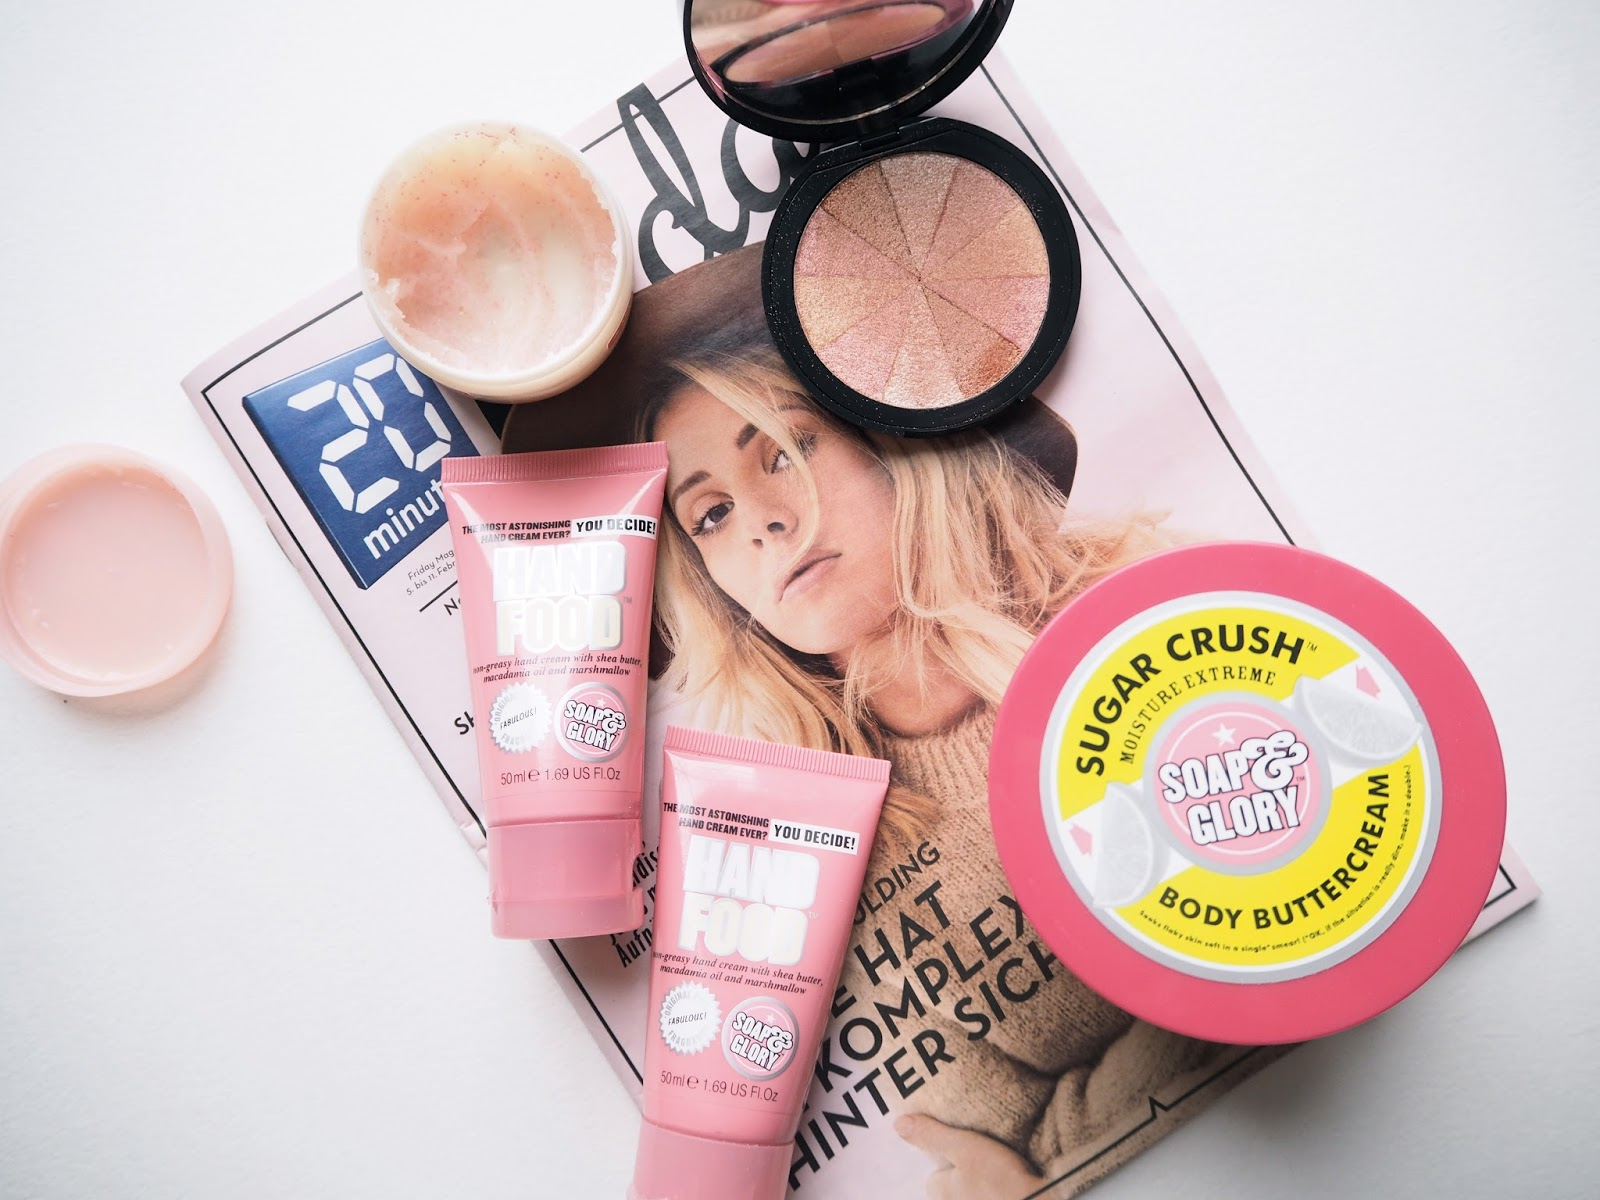 Top 5 Soap & Glory Products, best soap and glory products, hand food, sugar crush body buttercream, scrub em and leave em, peach party, archery brow pencil, review